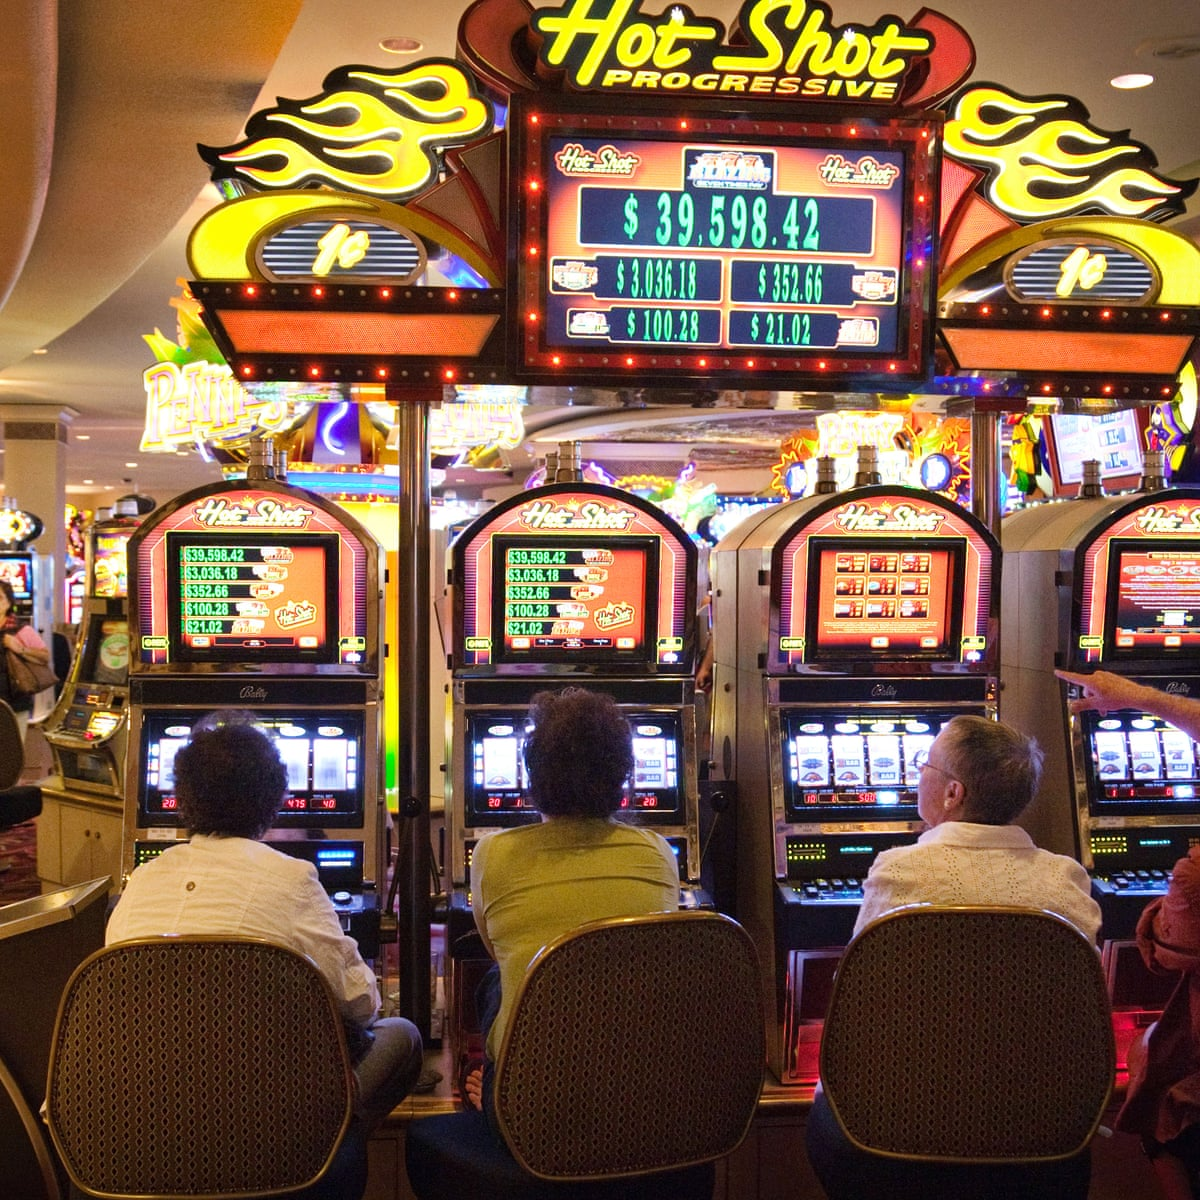 Slot Machines More Dangwrous Than Other Games